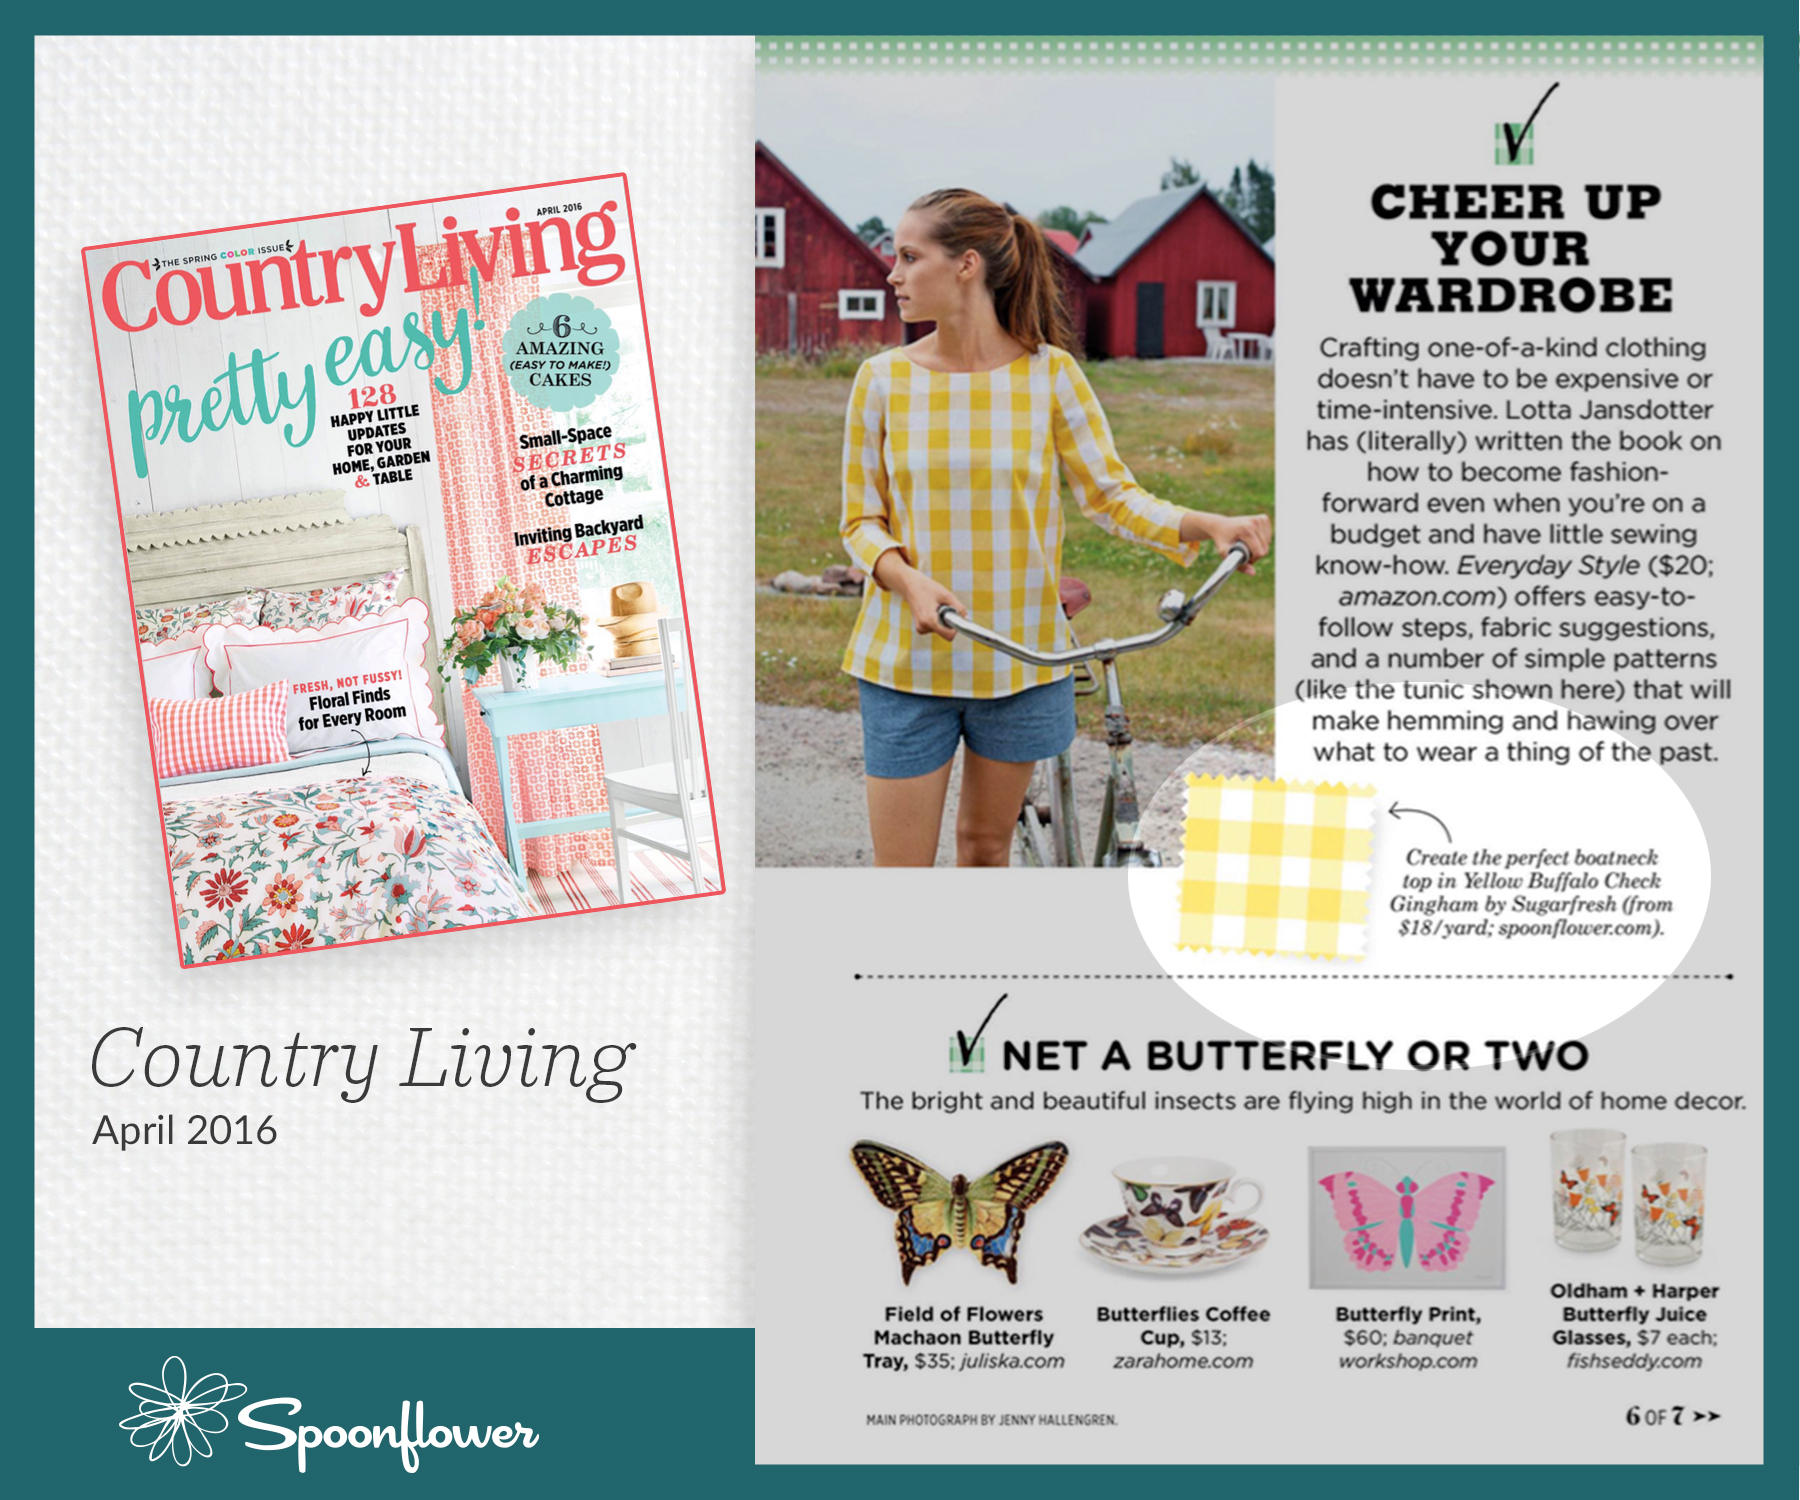 Press press releases spoonflower for Country living sweepstakes april 2016